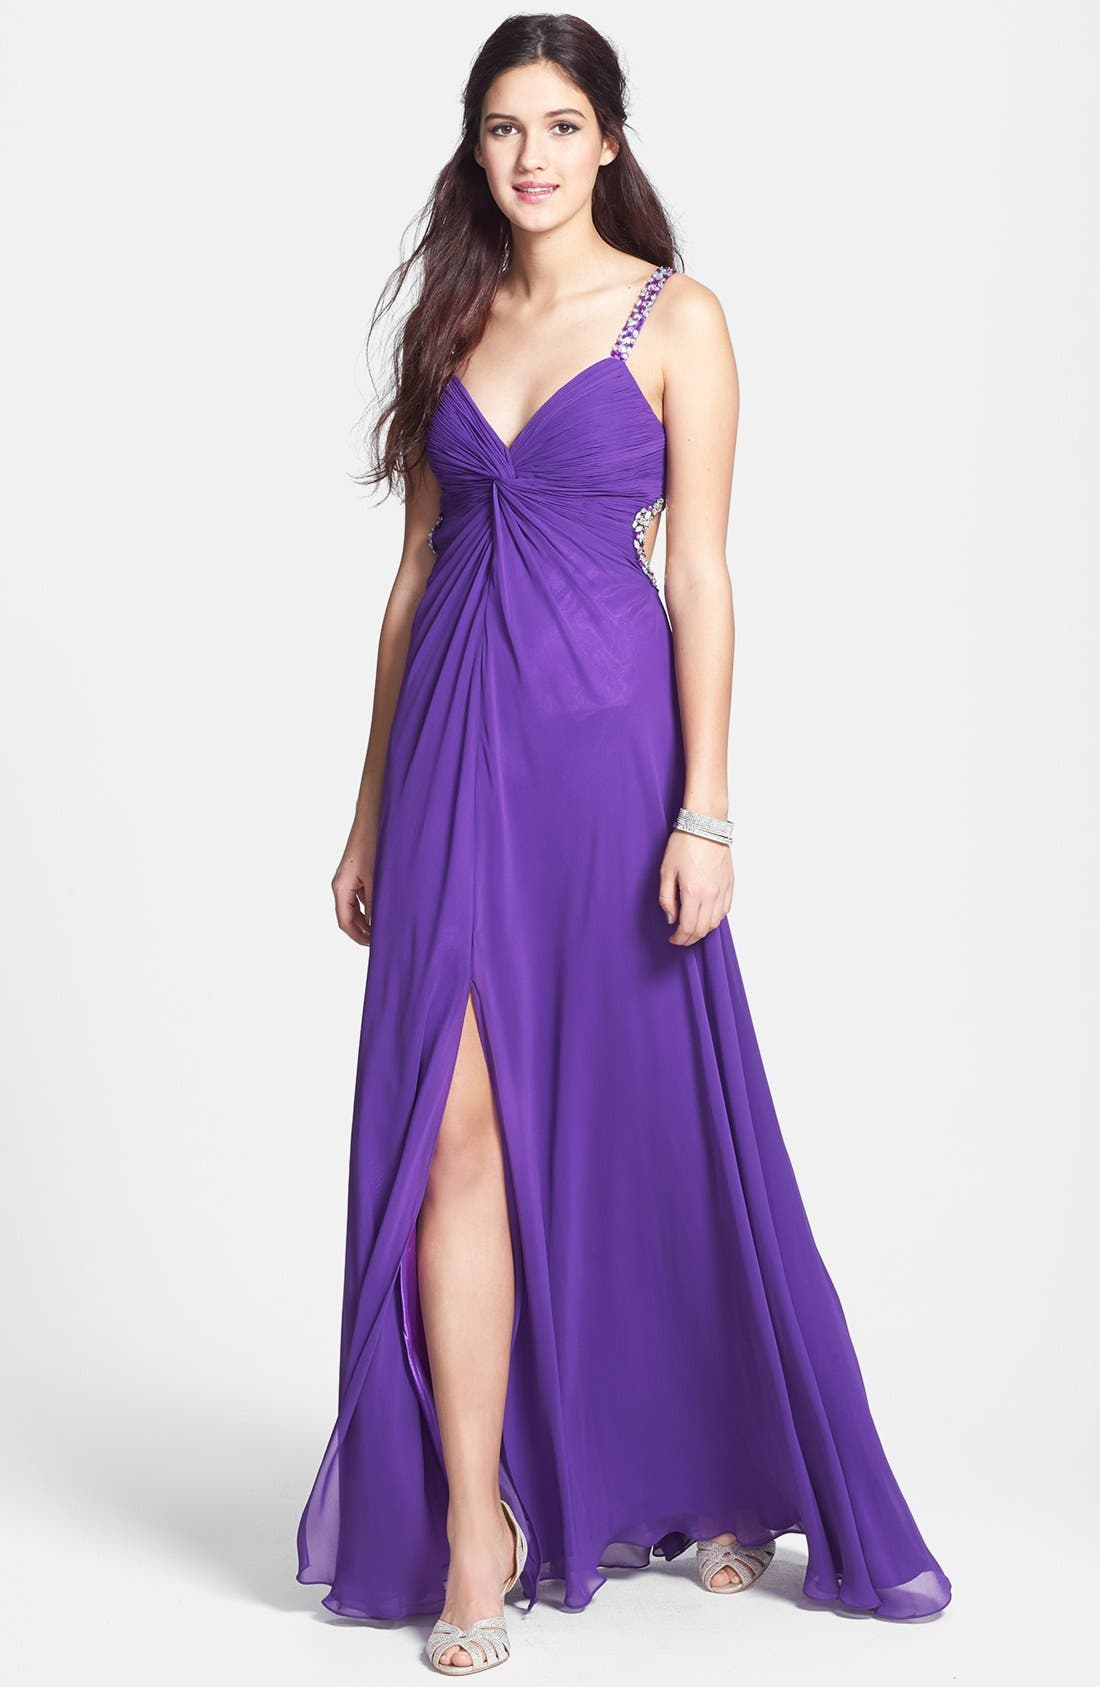 Alternate Image 1 Selected - Faviana Embellished Front Twist Chiffon Gown (Online Exclusive)